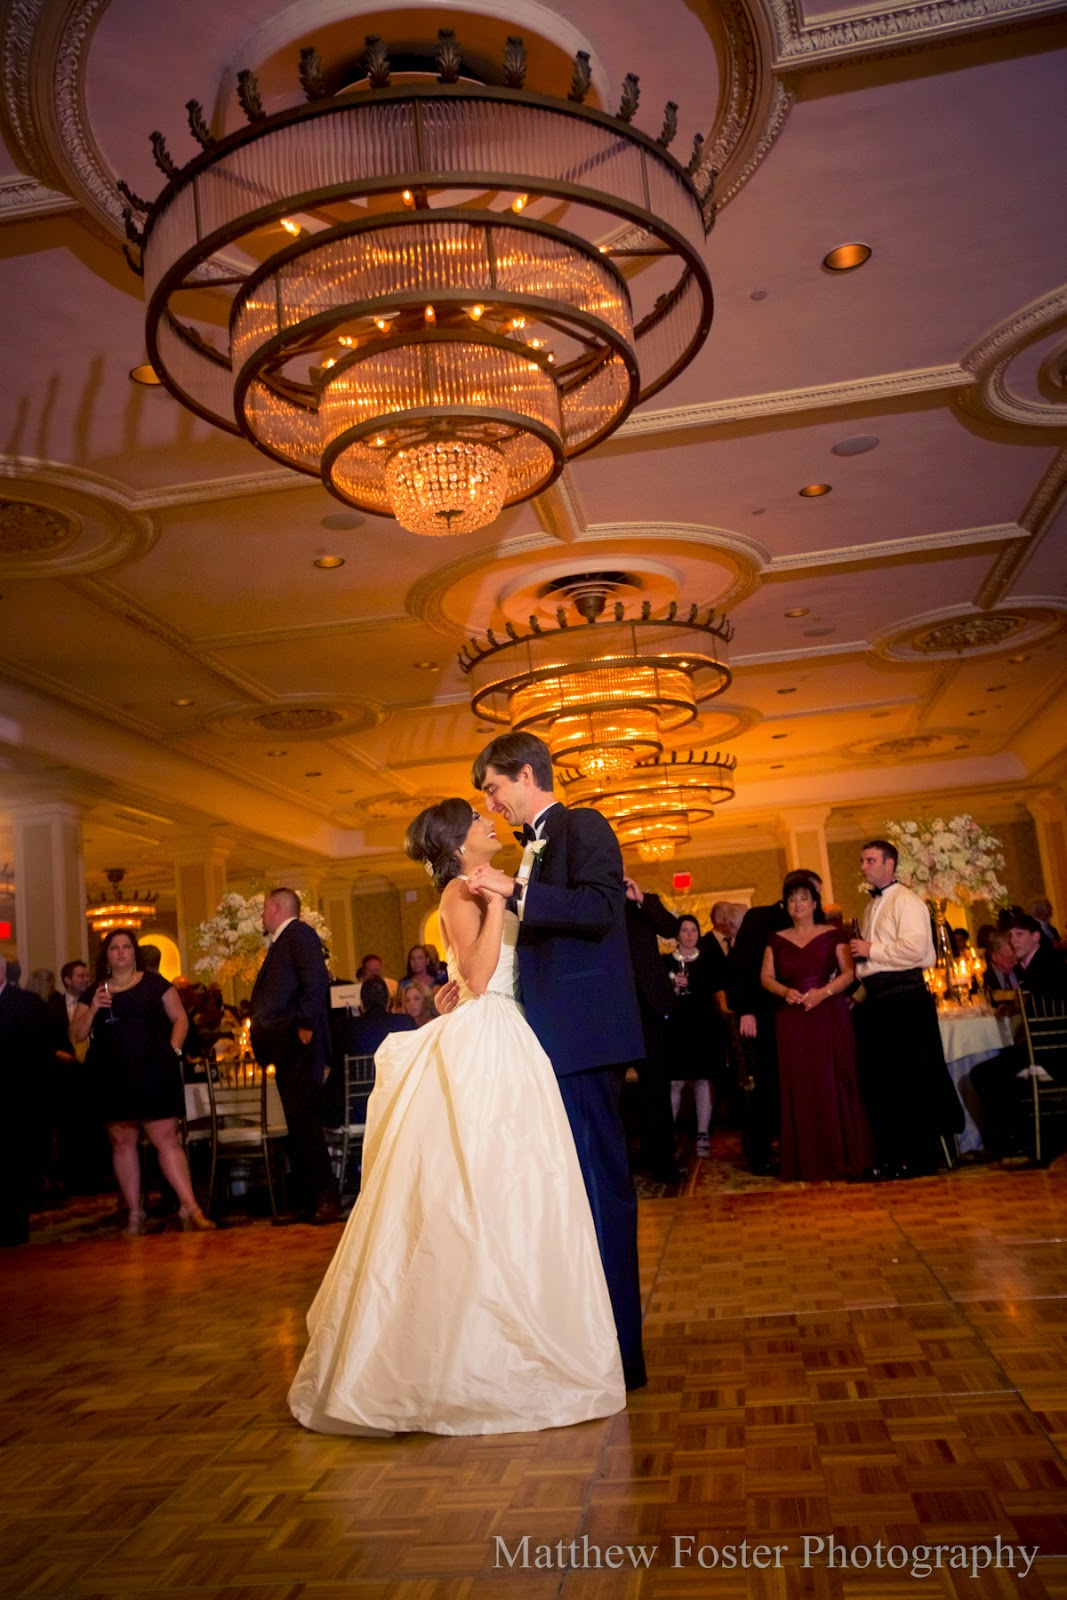 Live Wedding Painter New Orleans: Live Wedding Painting